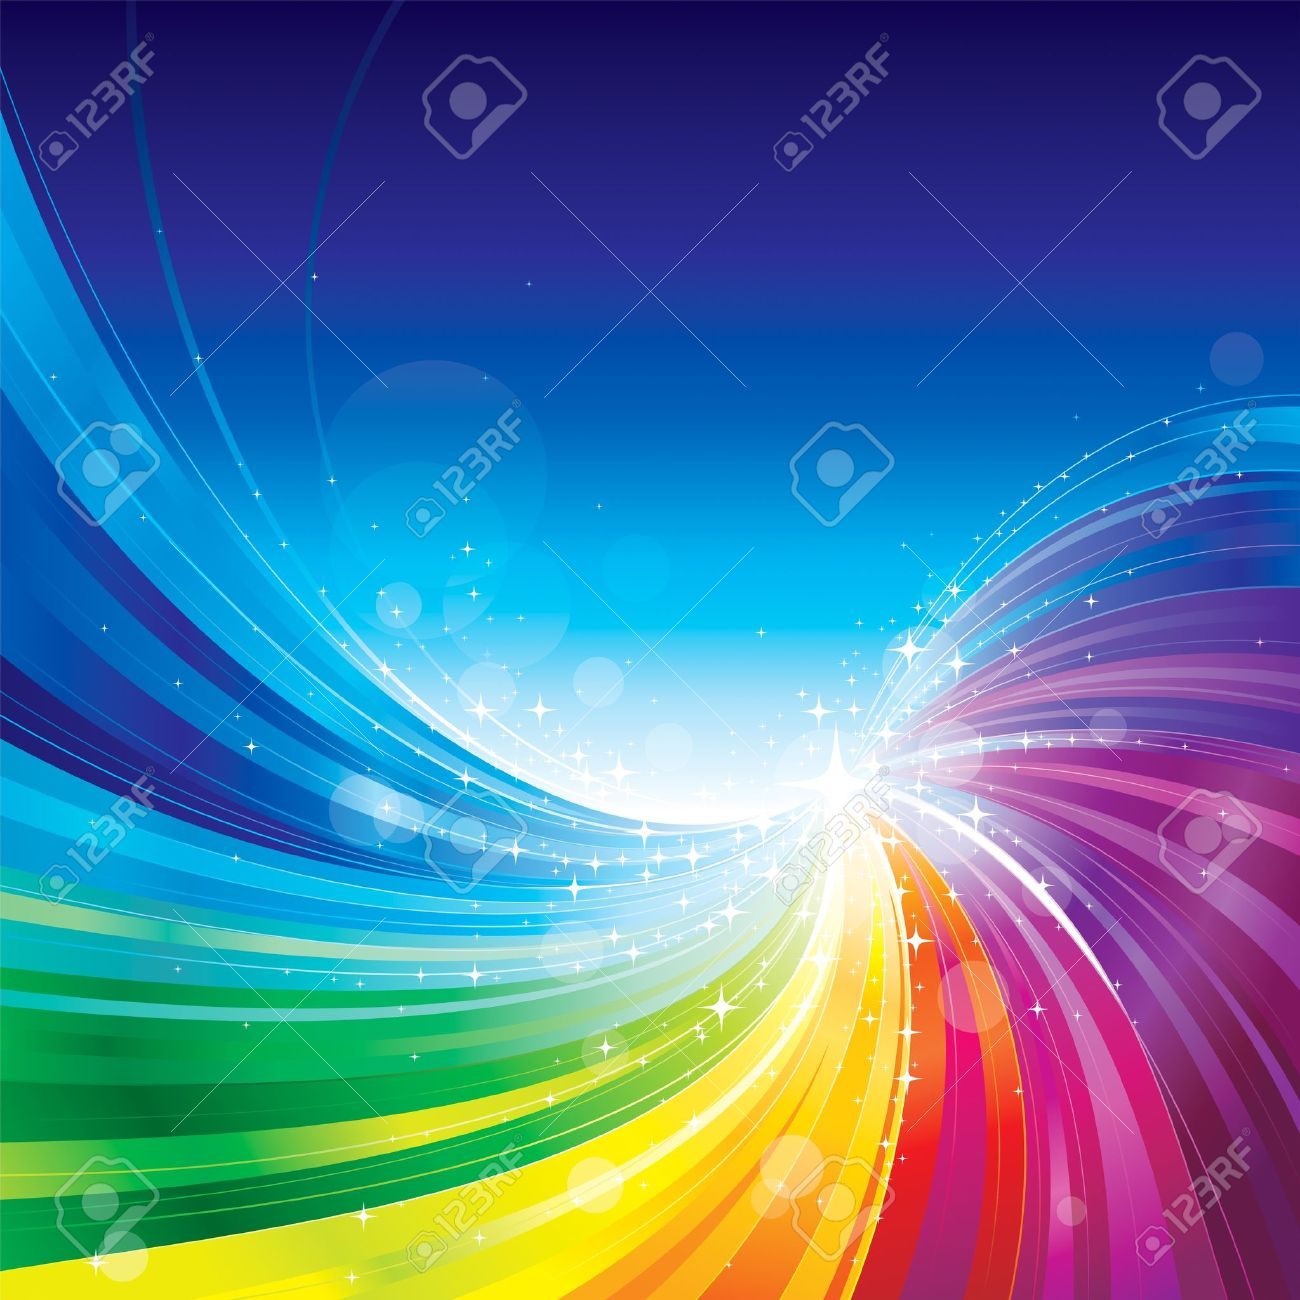 Abstract rainbow colors wave background. - 16453396